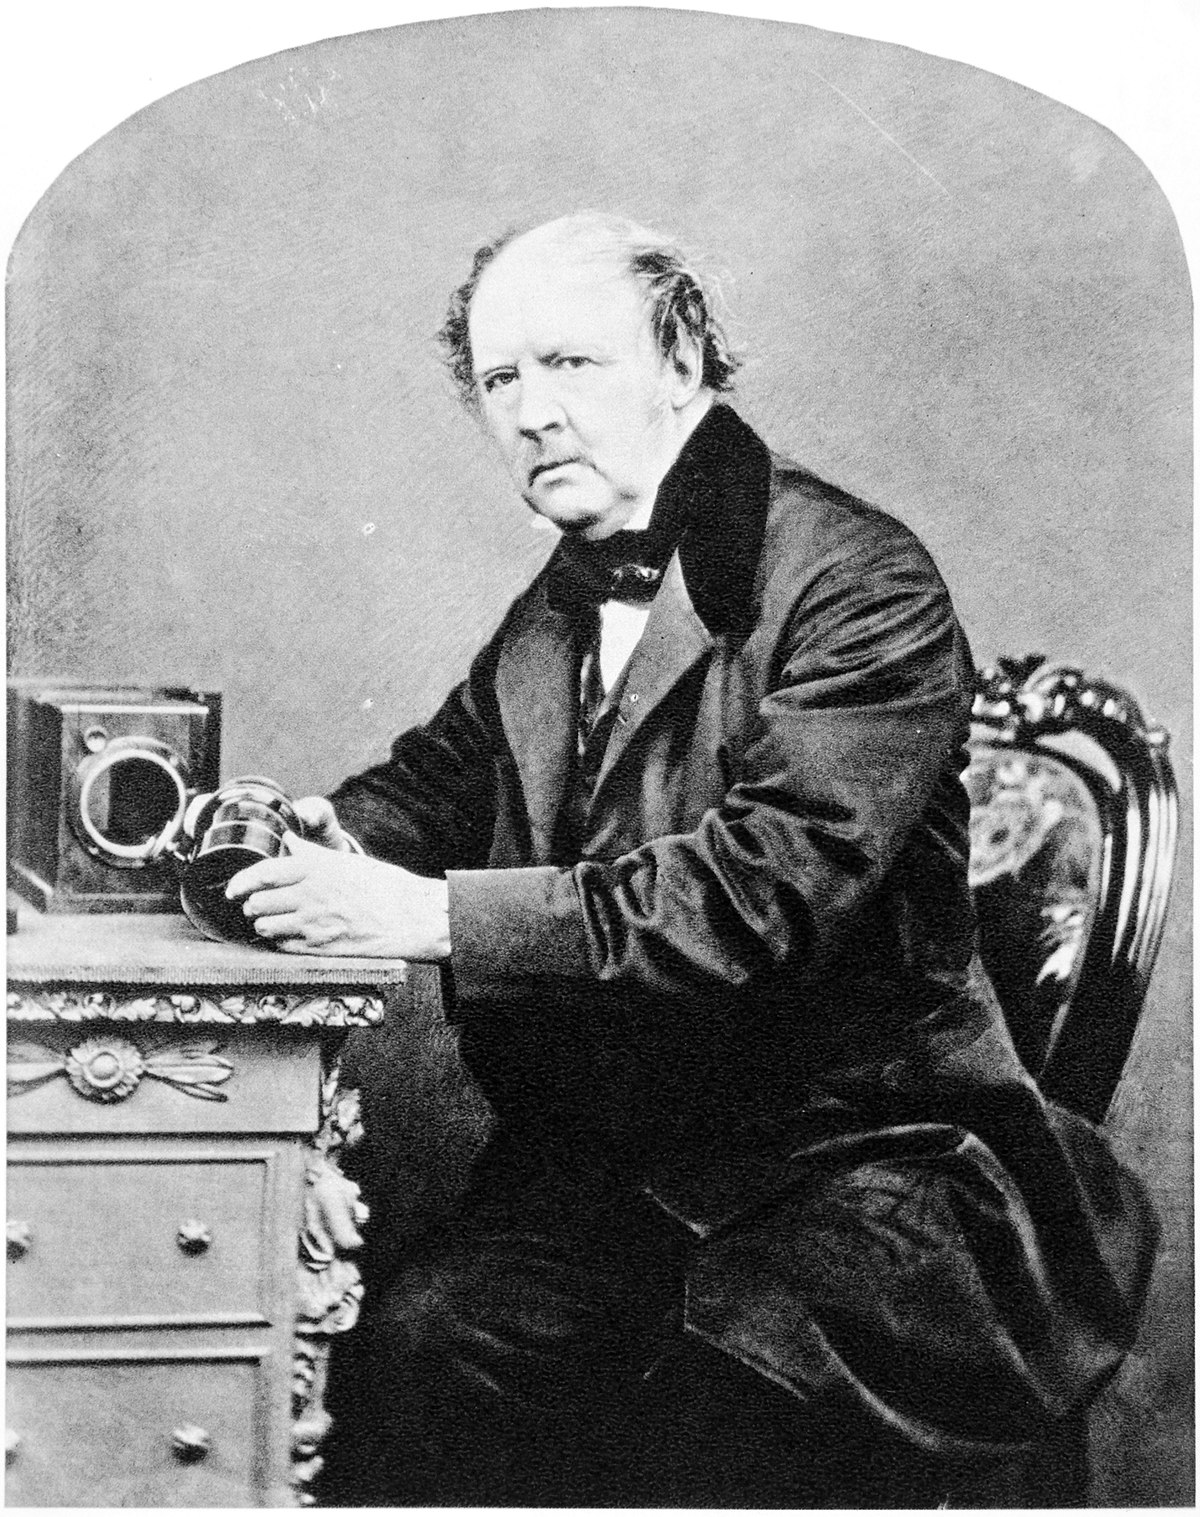 1200px-William_Henry_Fox_Talbot%2C_by_John_Moffat%2C_1864.jpg